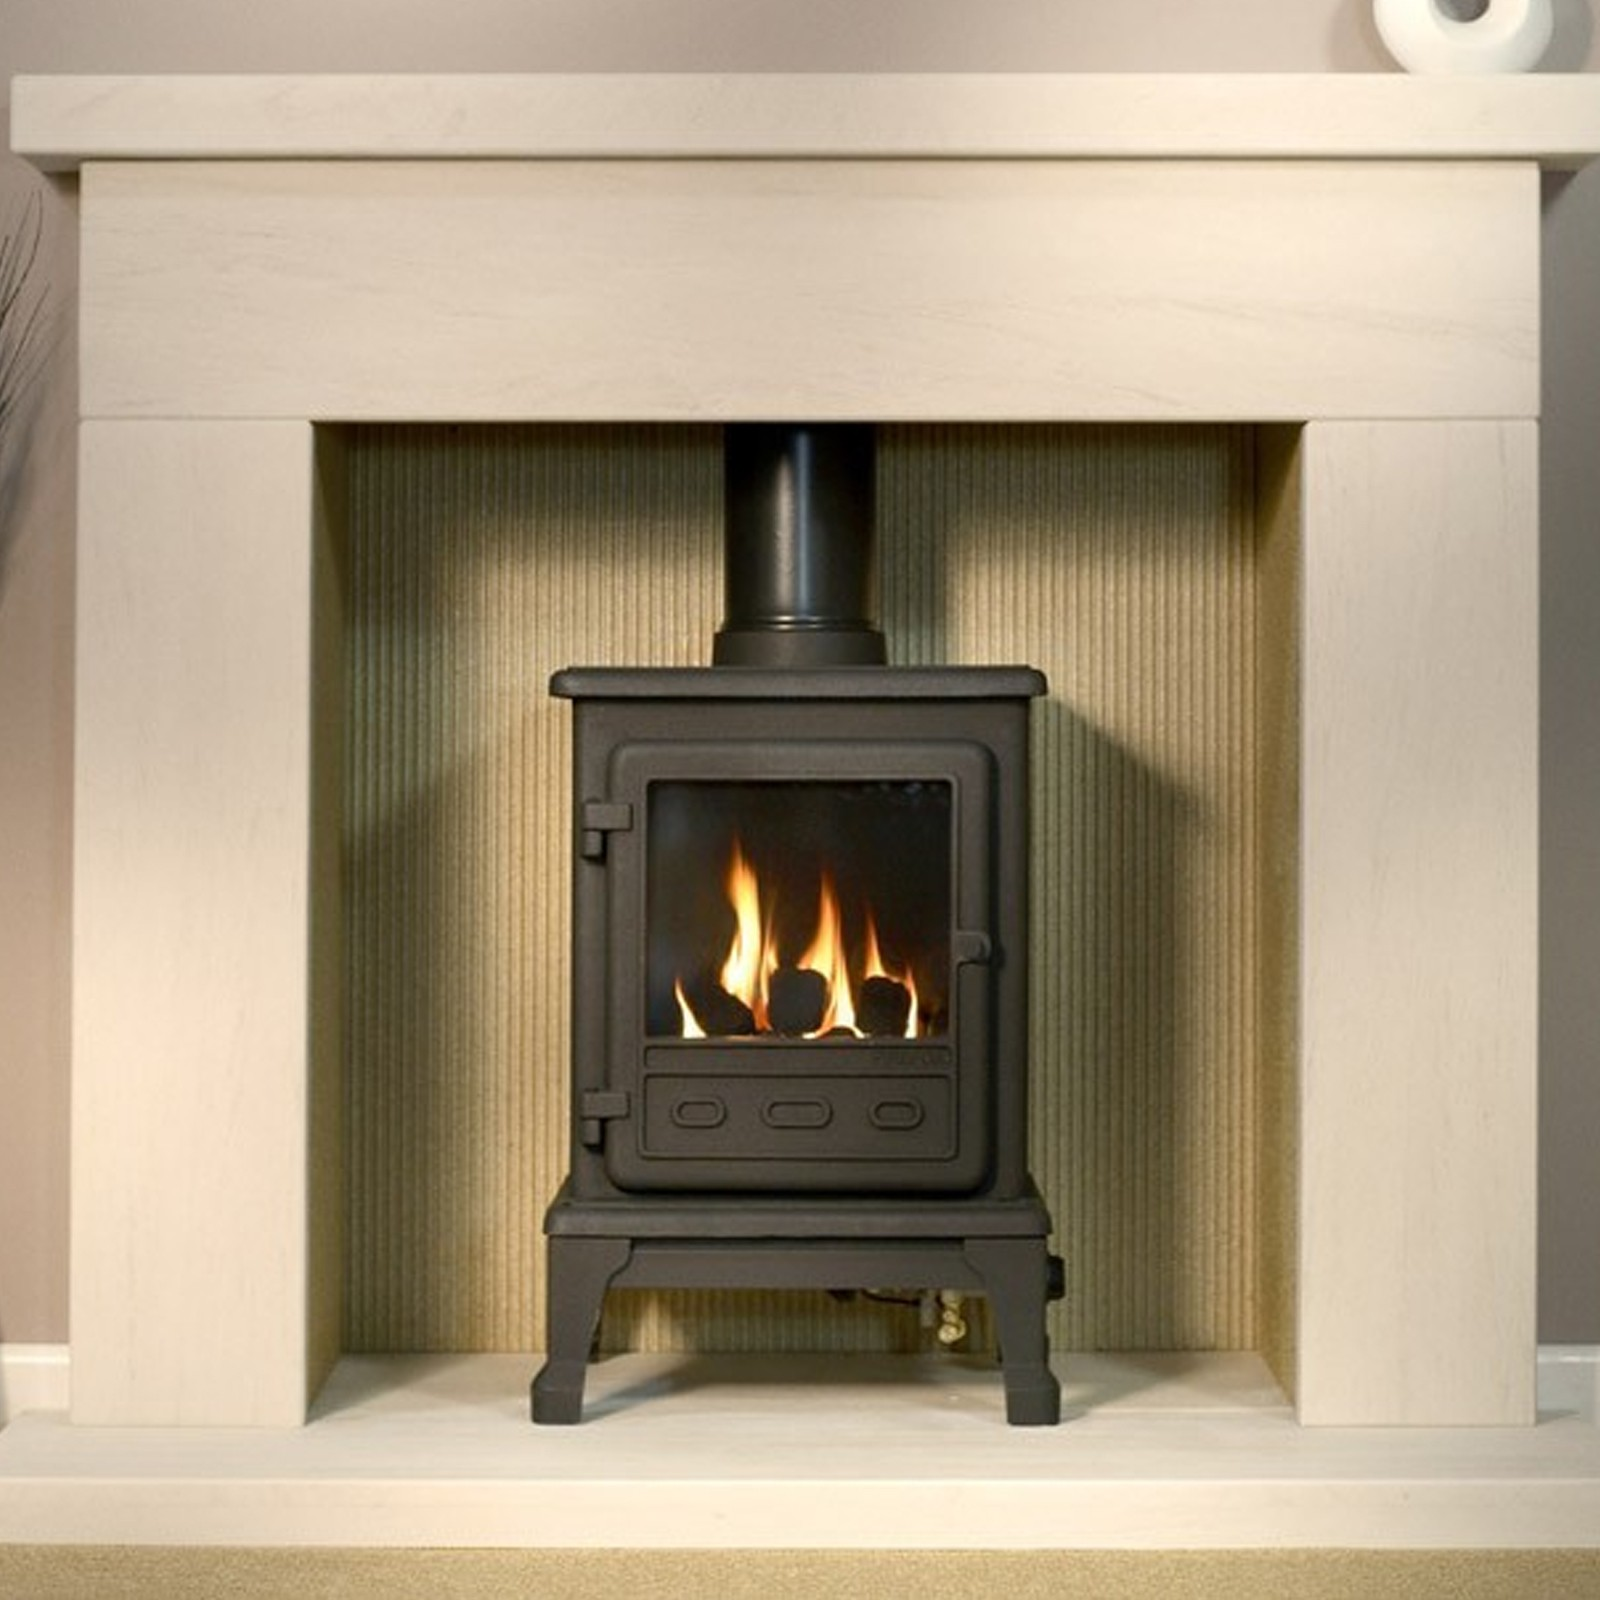 mega deals gallery firefox 5 gas stove free delivery. Black Bedroom Furniture Sets. Home Design Ideas